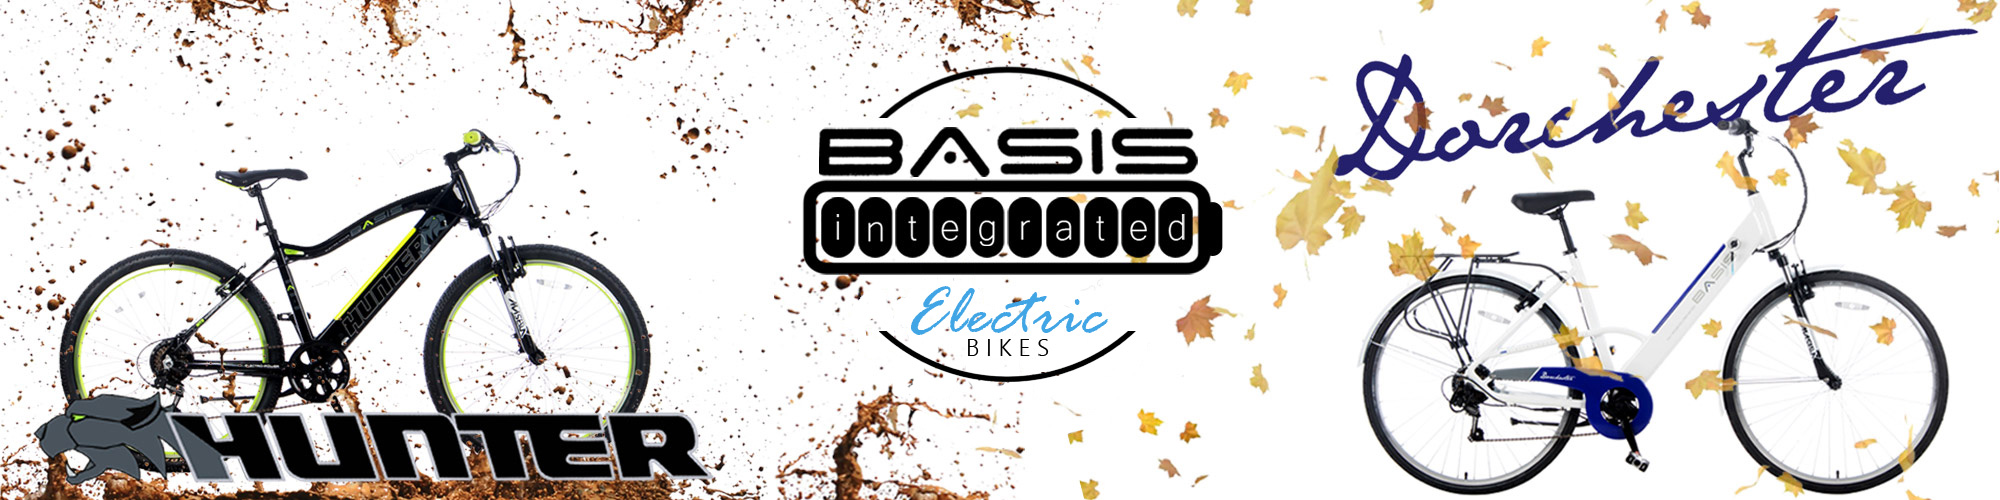 Basis Integrated Series at E-Bikes Drect